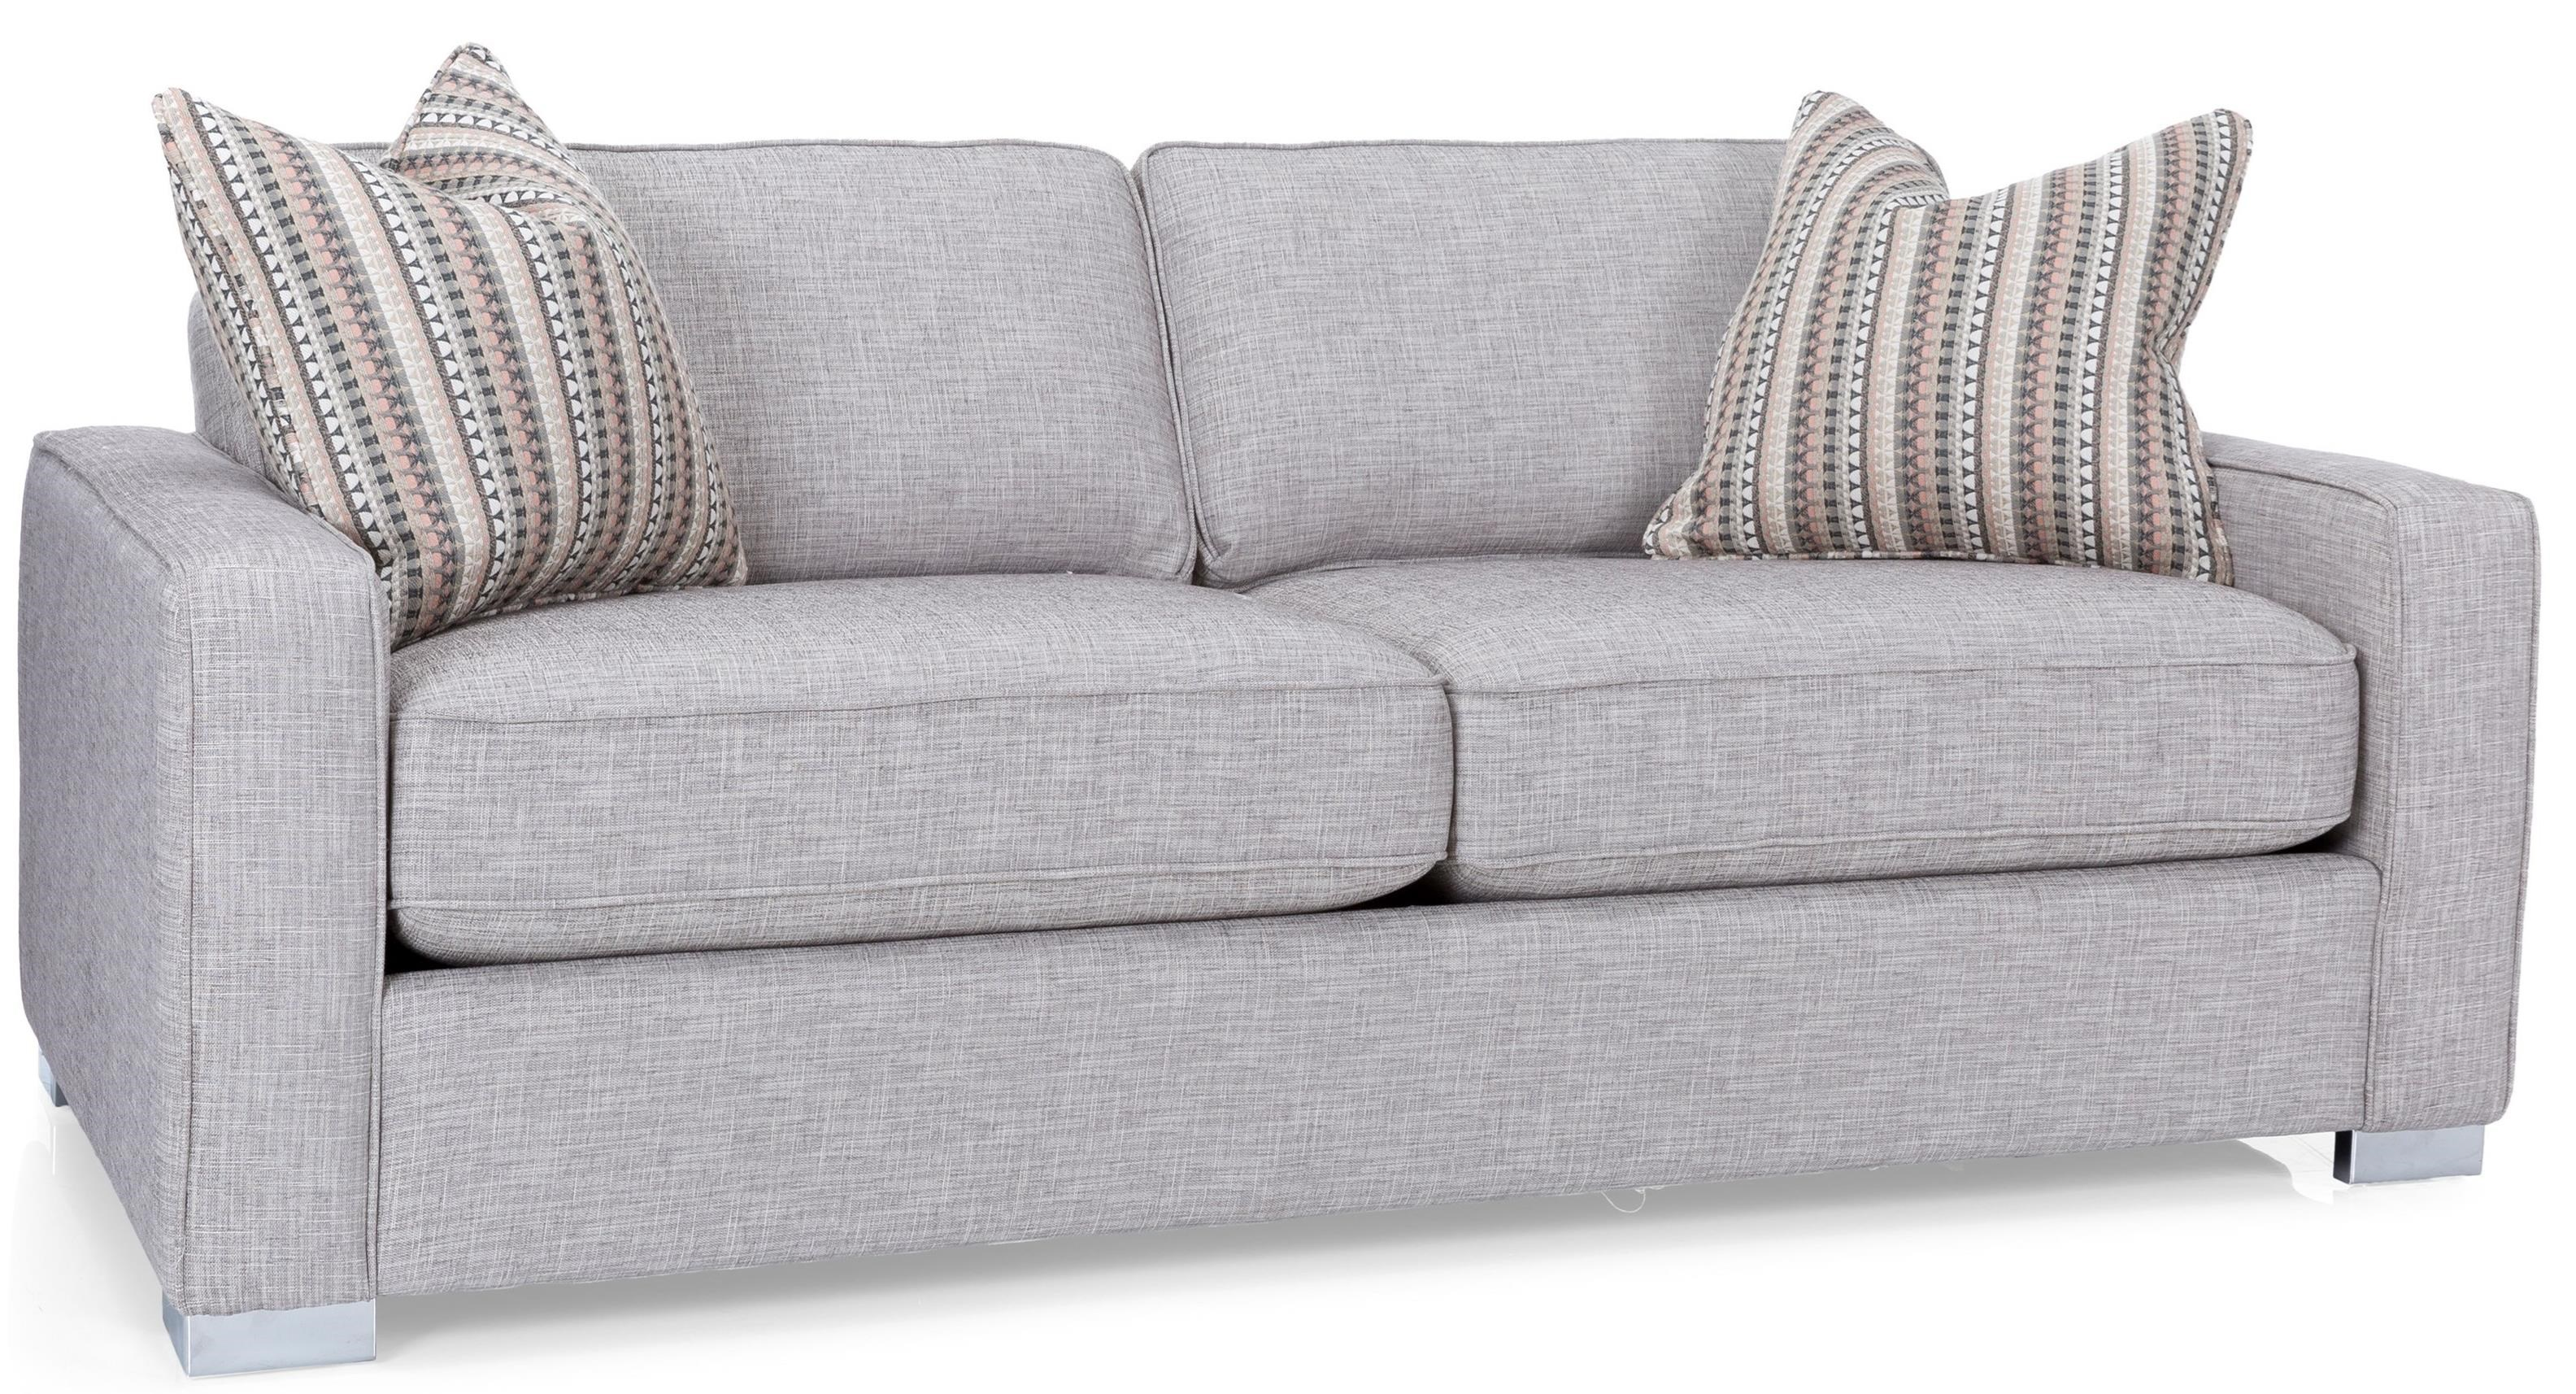 2591 Loveseat by Decor-Rest at Rooms for Less